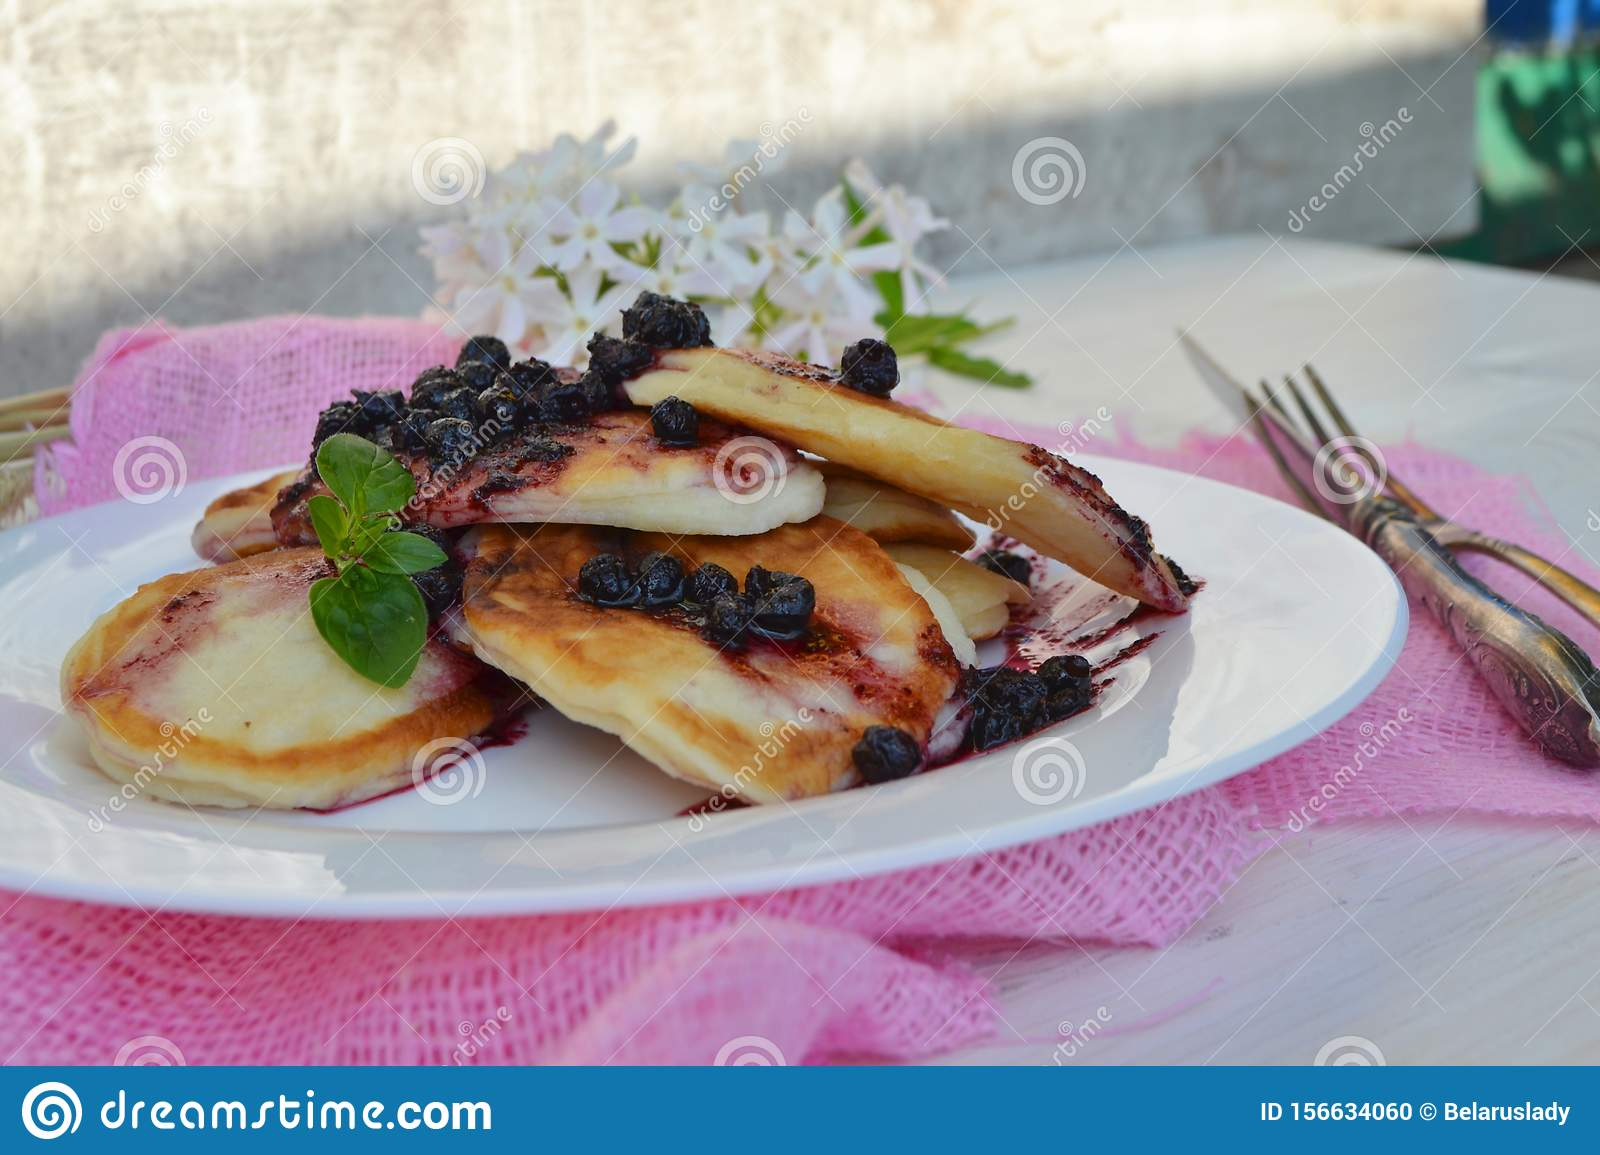 Cottage cheese pancakes with jam. Russian rustic cuisine. Concept healthy Breakfast